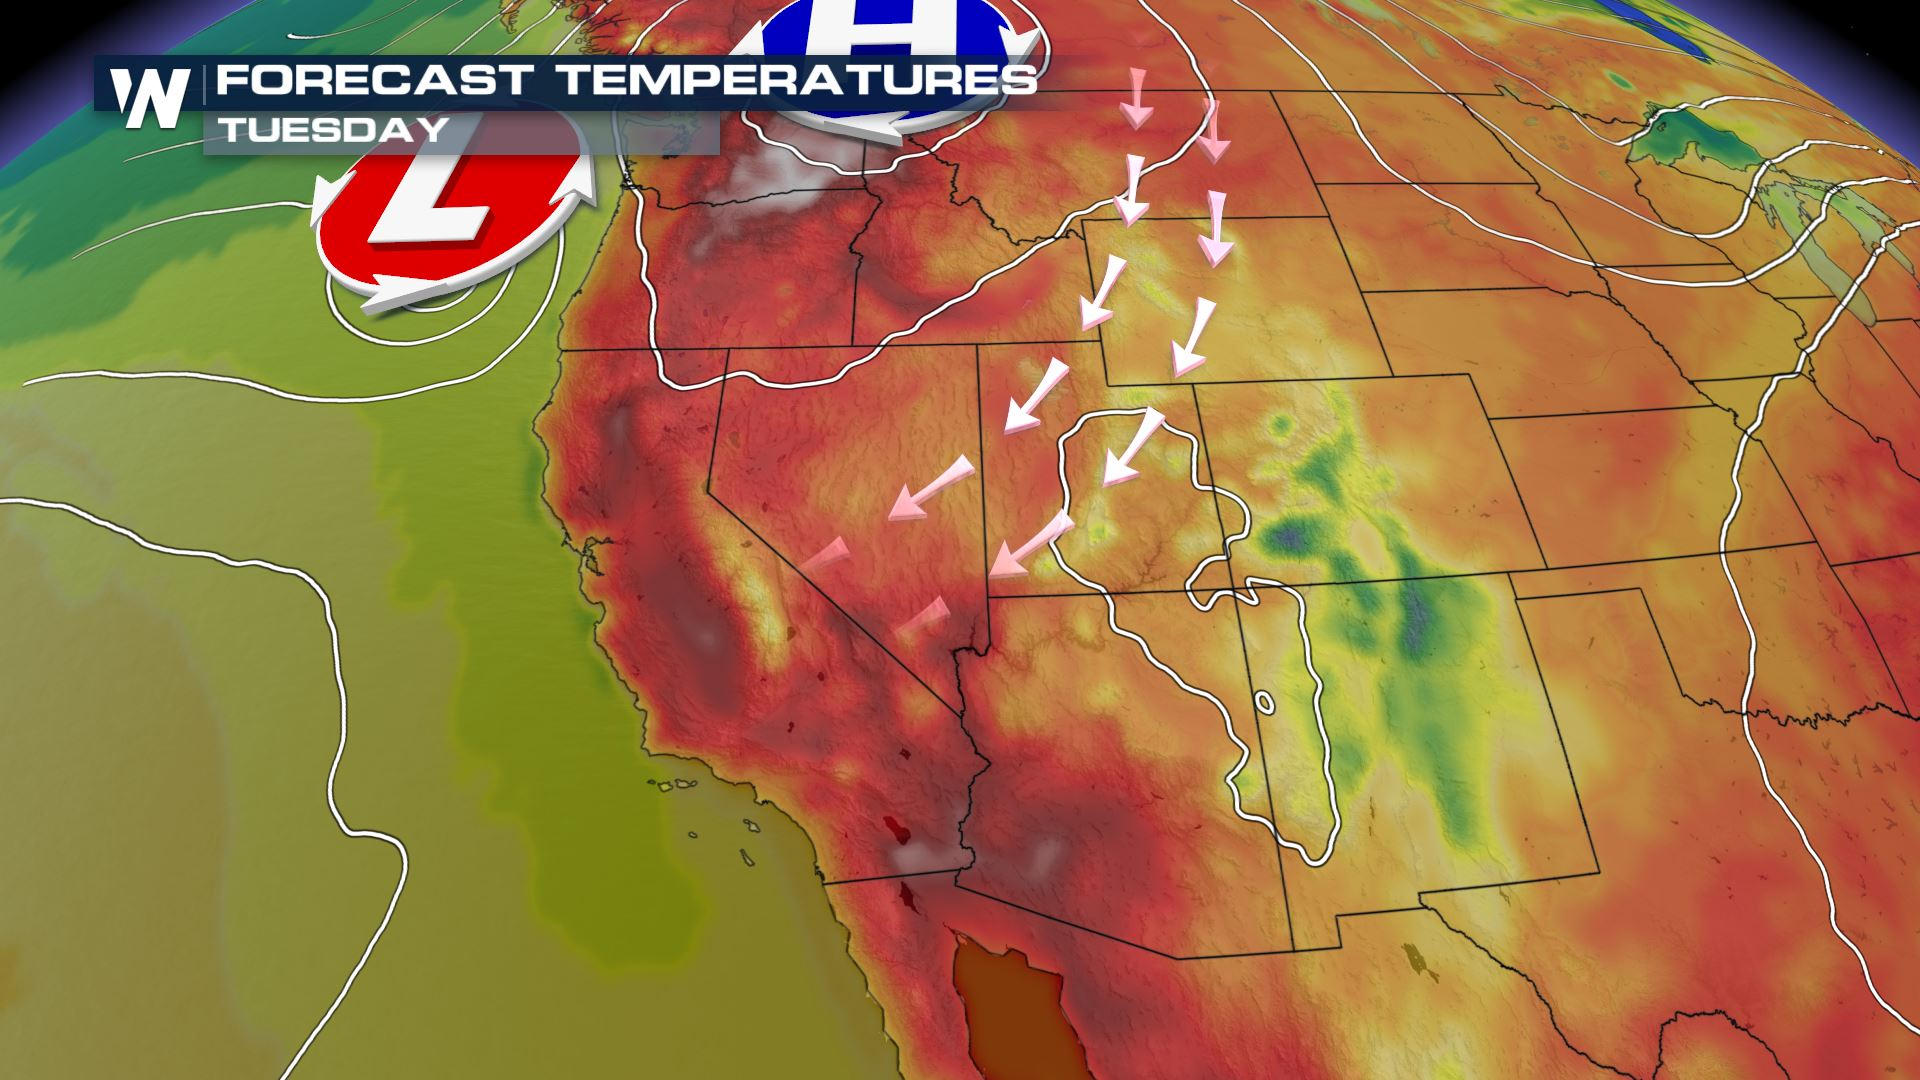 Fire Risk Continues Across the West